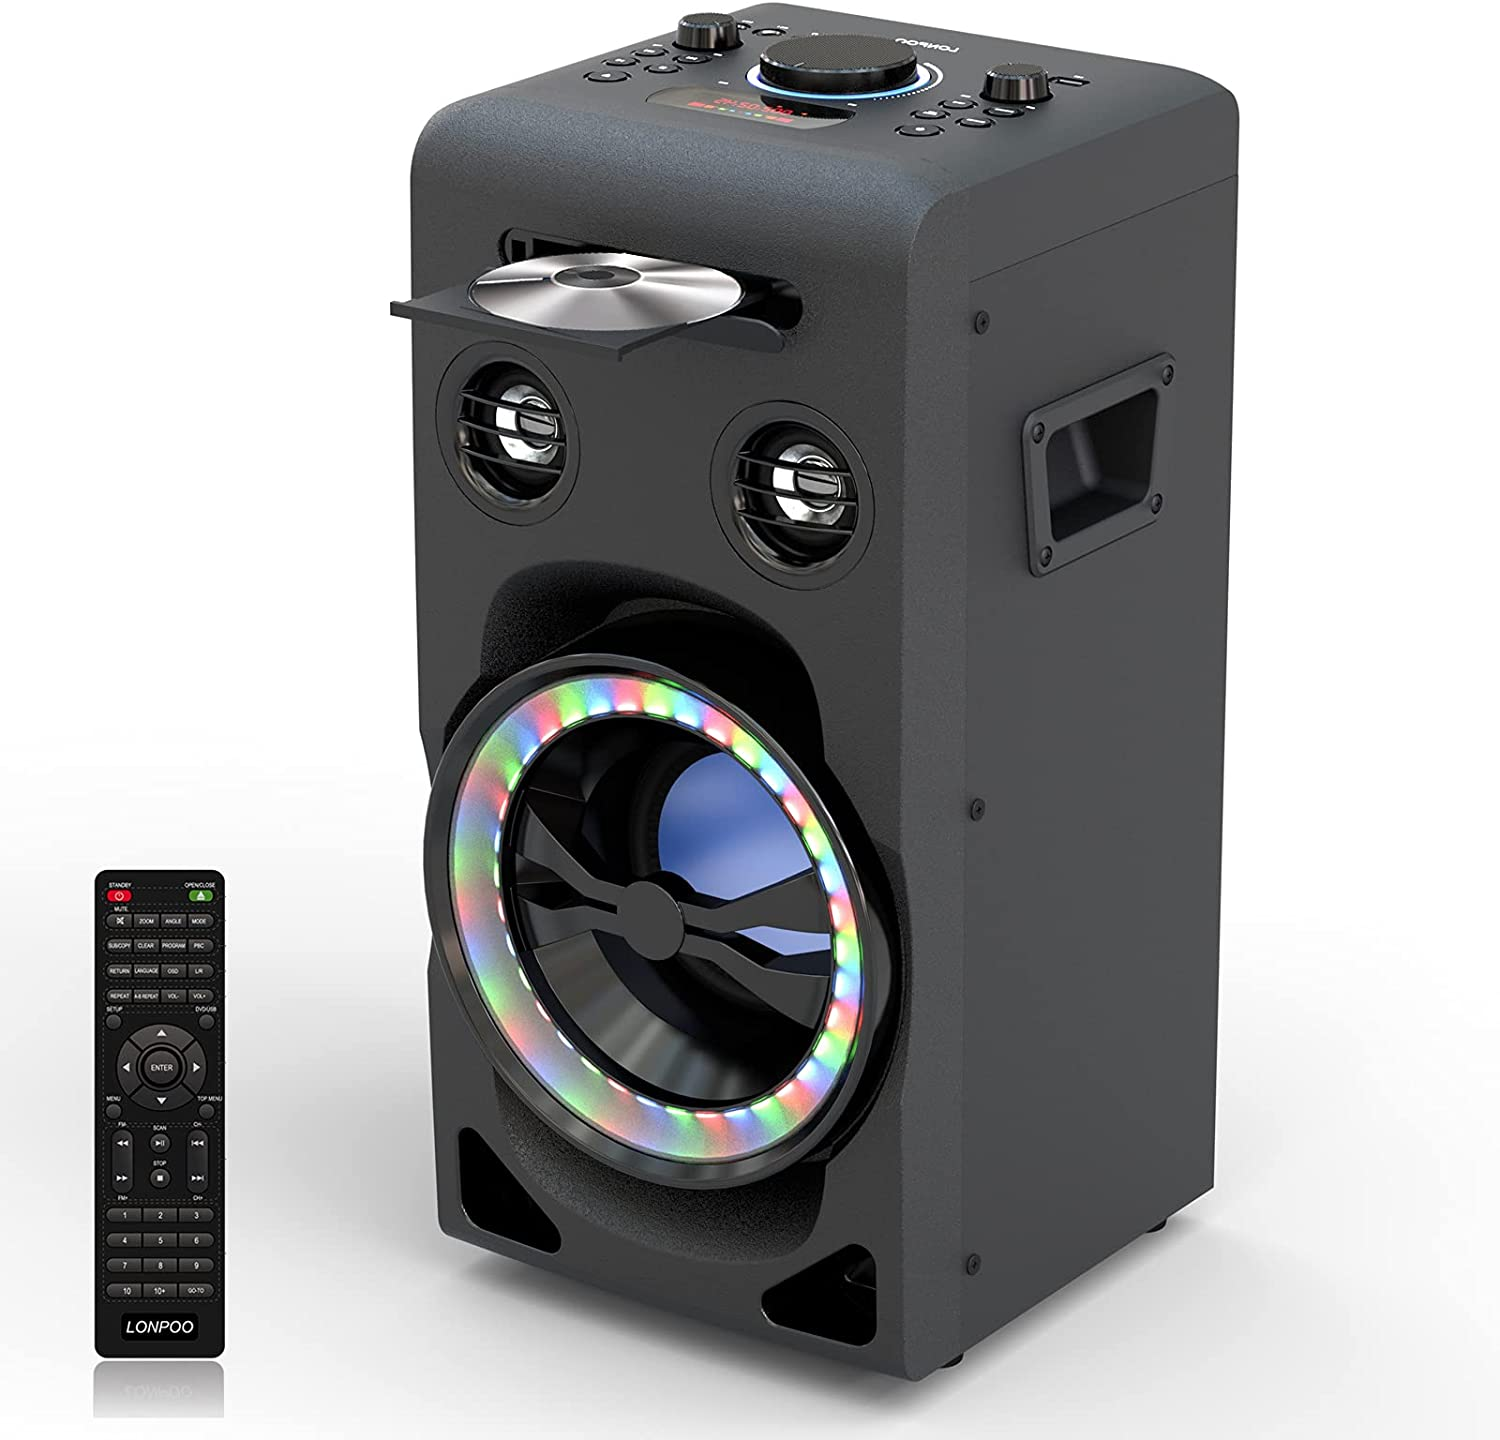 LONPOO Home Stereo System Bluetooth Party Speaker with DSP and Enhanced Bass, LED Lightshow, CD/DVD Player HDMI, Karaoke MIC 2 Ports, FM Radio, USB/AUX Input, Remote Control (P10)